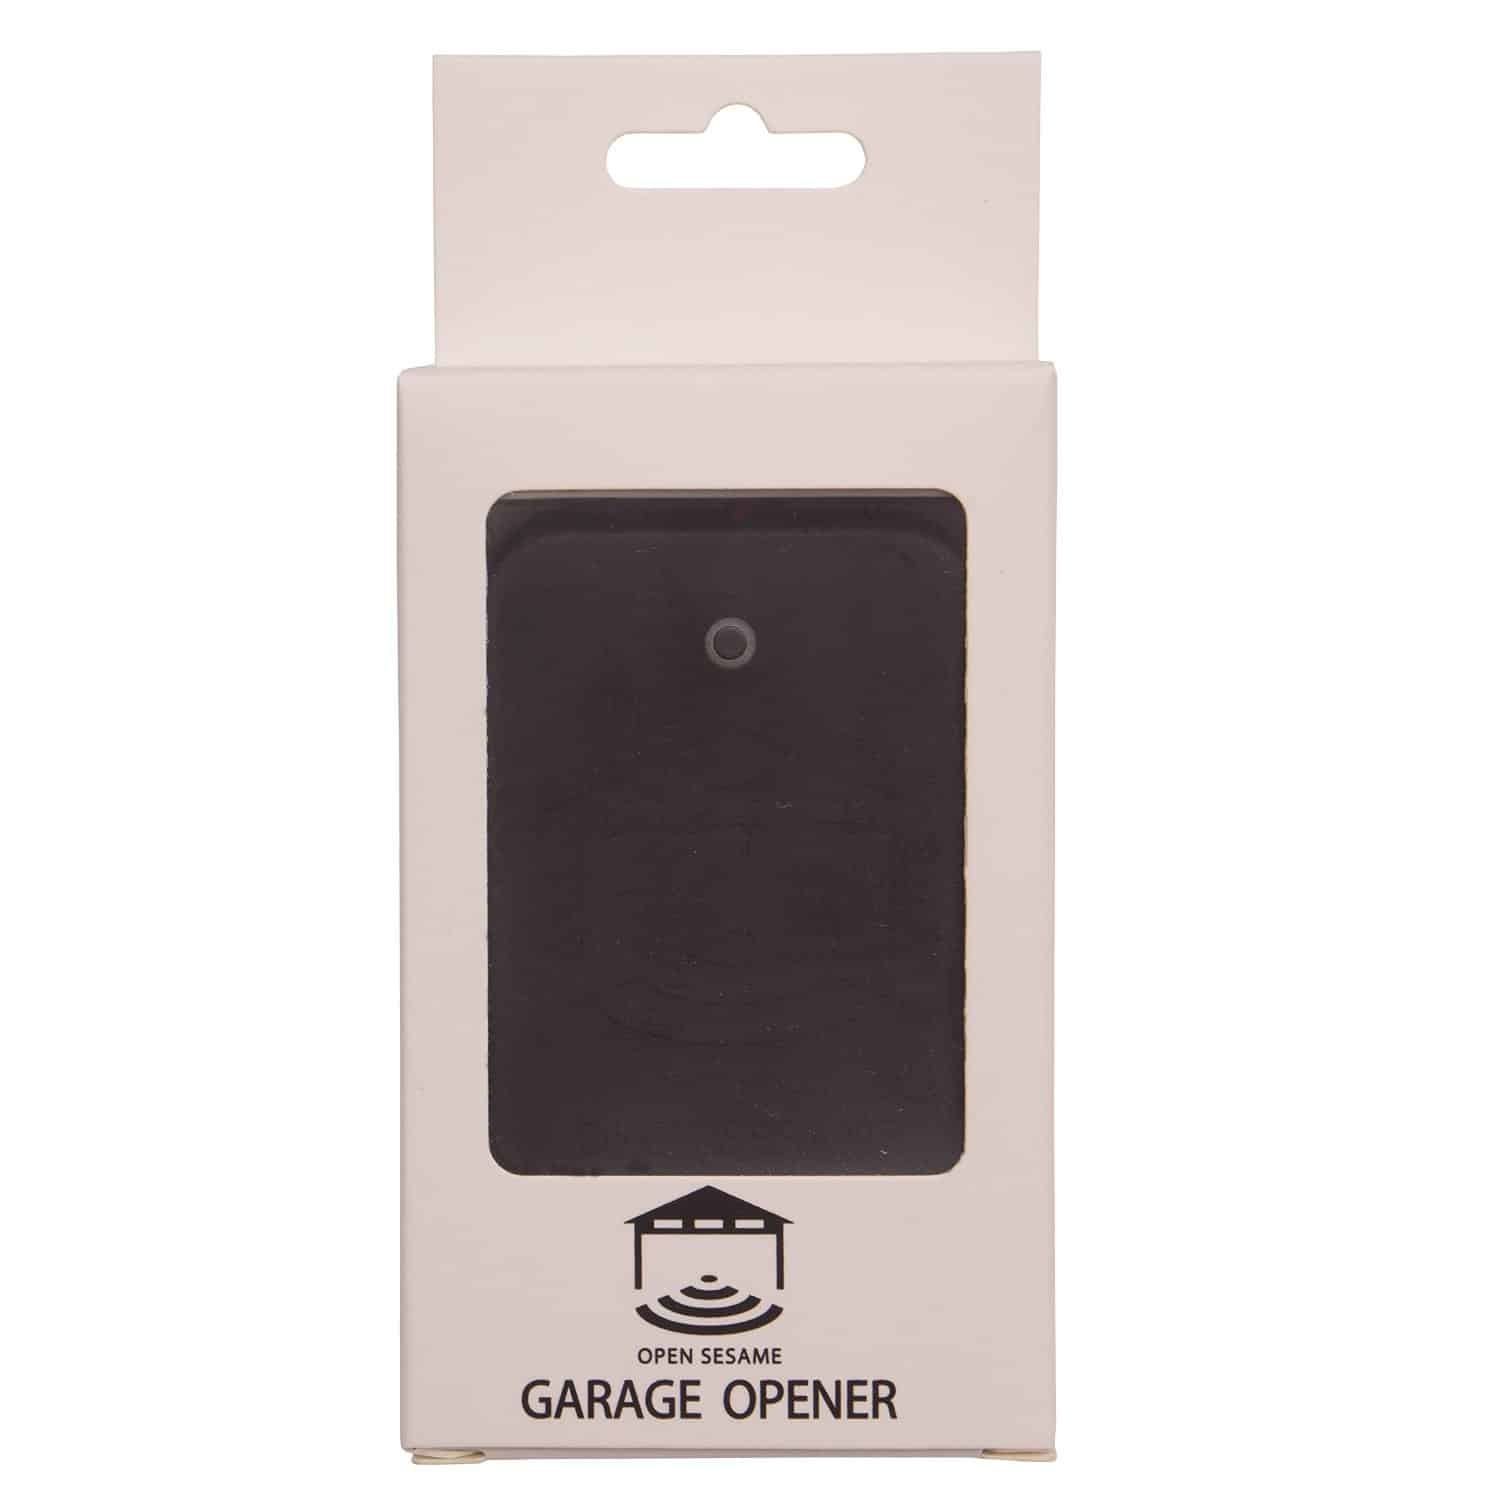 Garage Door Opener Remote Open Sesame Hnaos01 Garage Door Opener Remote Control Reviews